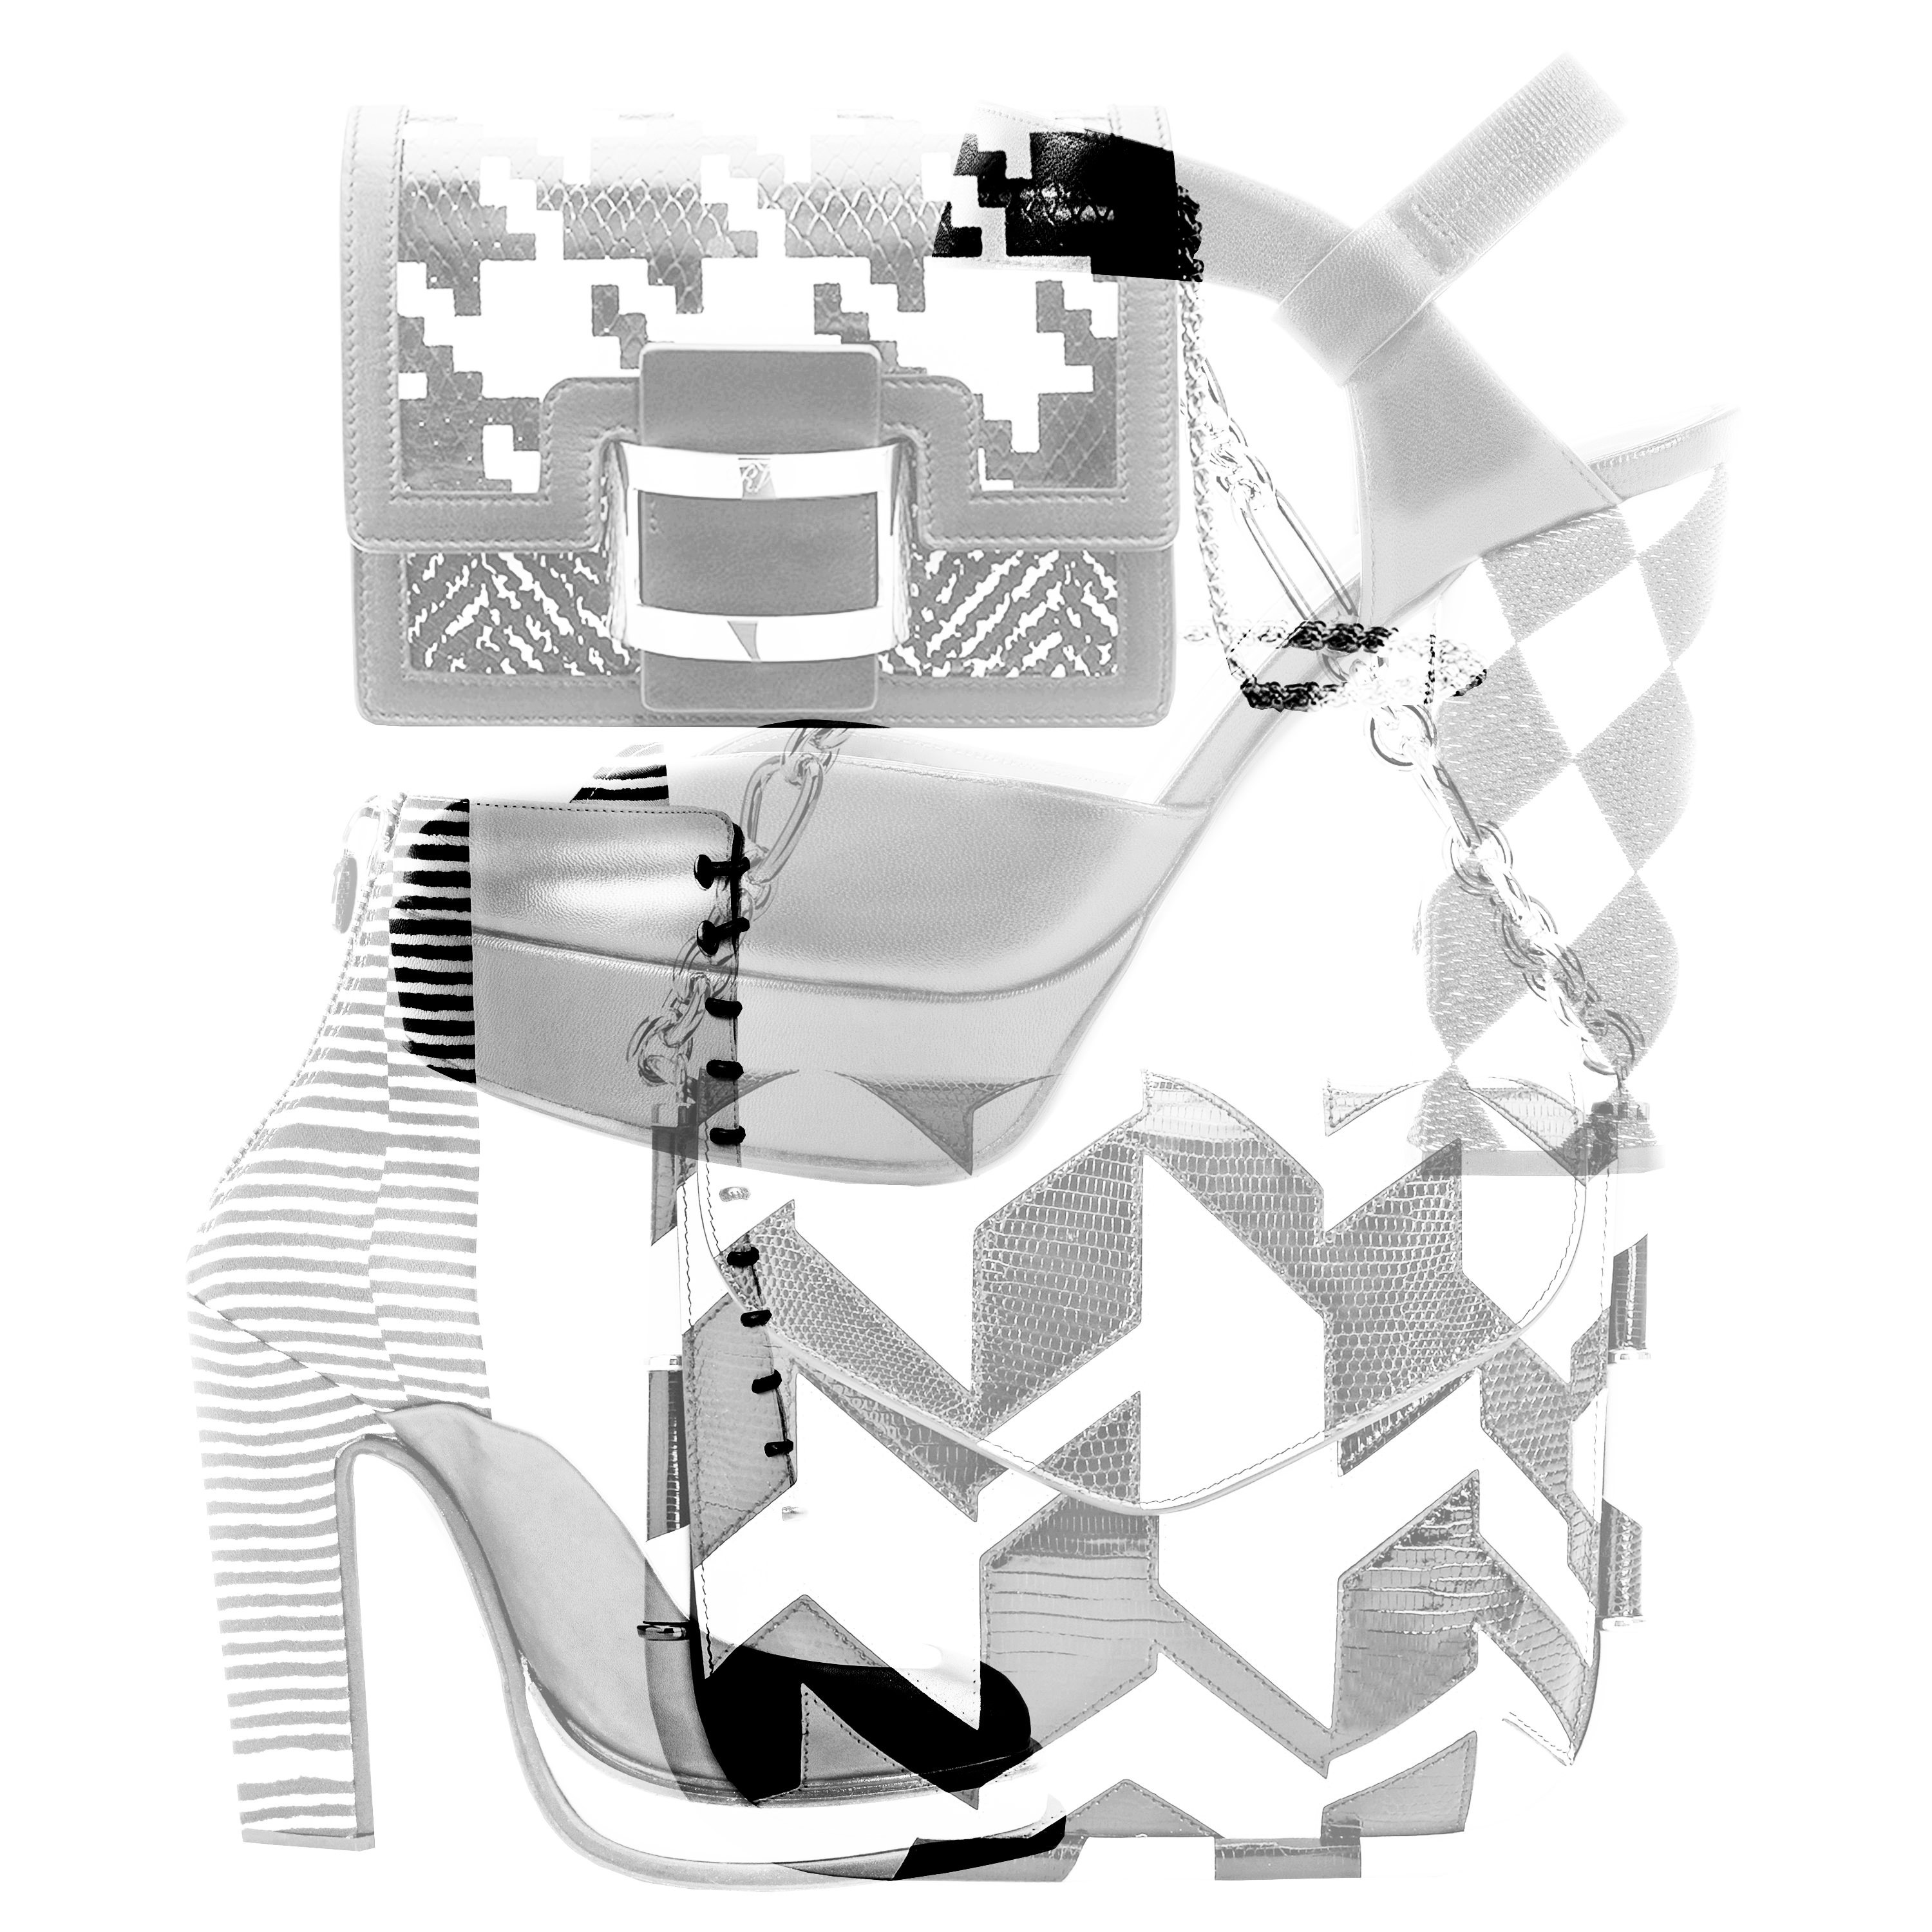 The black and white bags and shoes from Carven, Emporio Armani, Roger Vivier and Salvatore Ferragamo